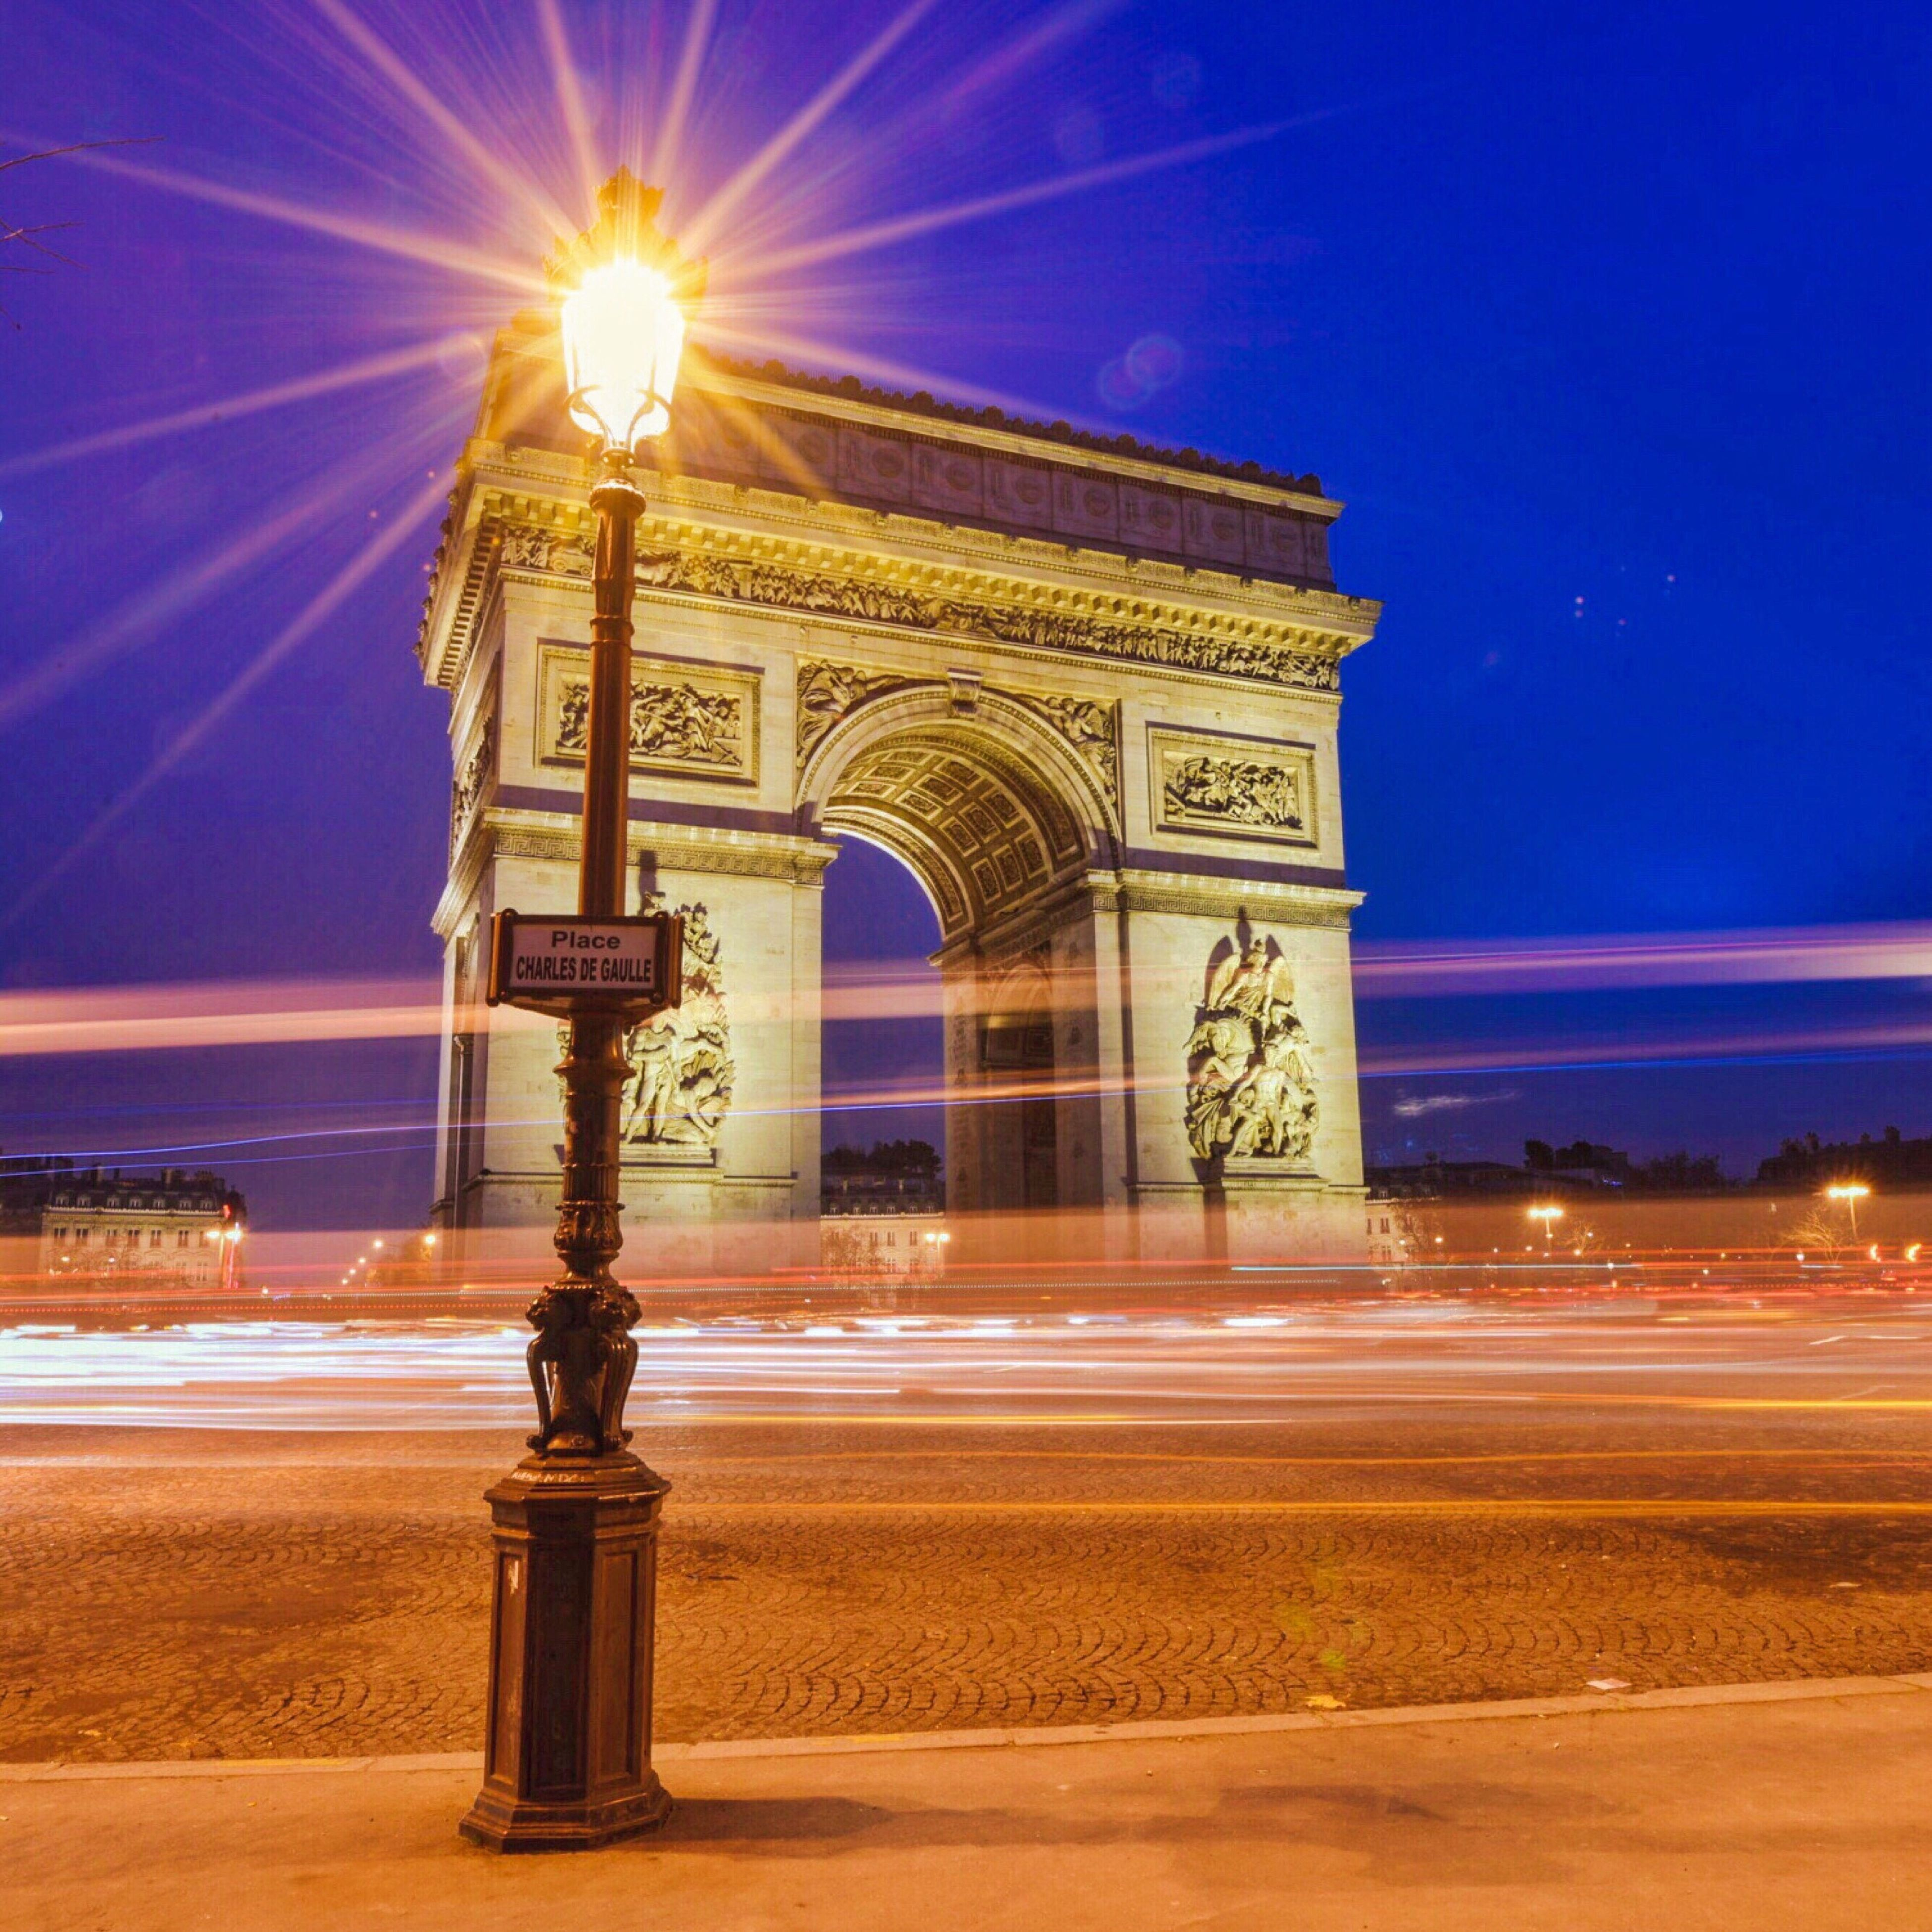 triumphal arch, arch, architecture, night, city, monument, built structure, building exterior, illuminated, outdoors, travel destinations, sky, long exposure, cultures, speed, no people, light effect